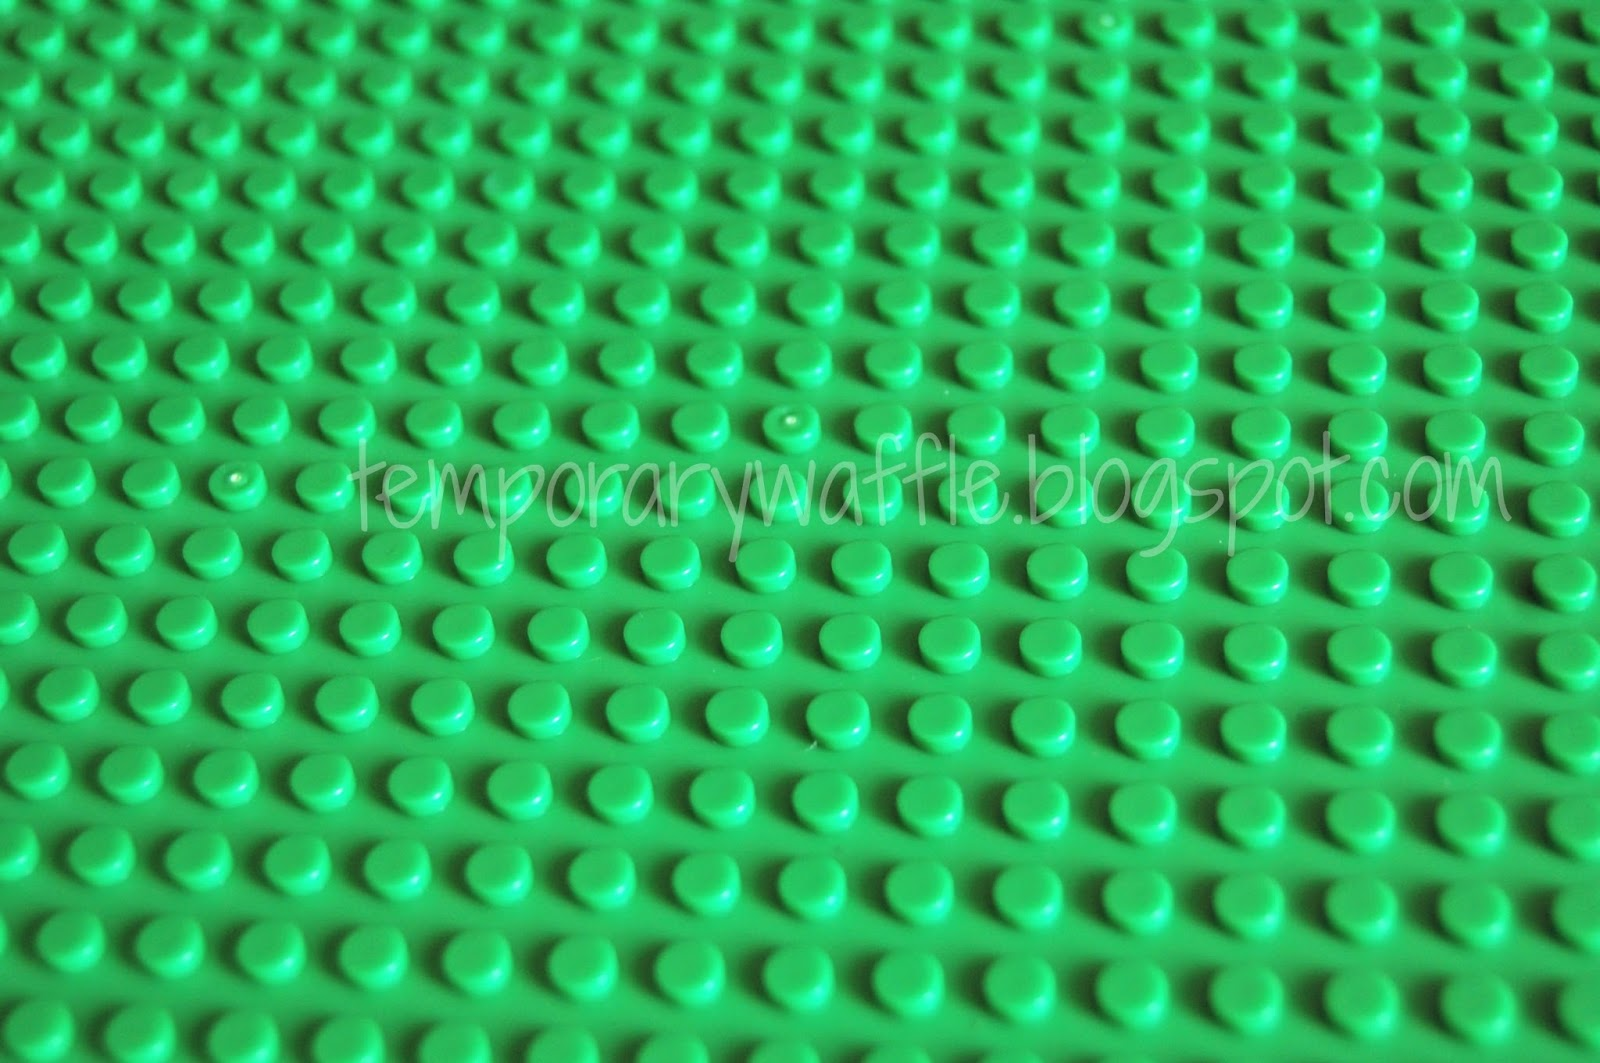 Temporary Waffle Building With Lego S On Green Lego